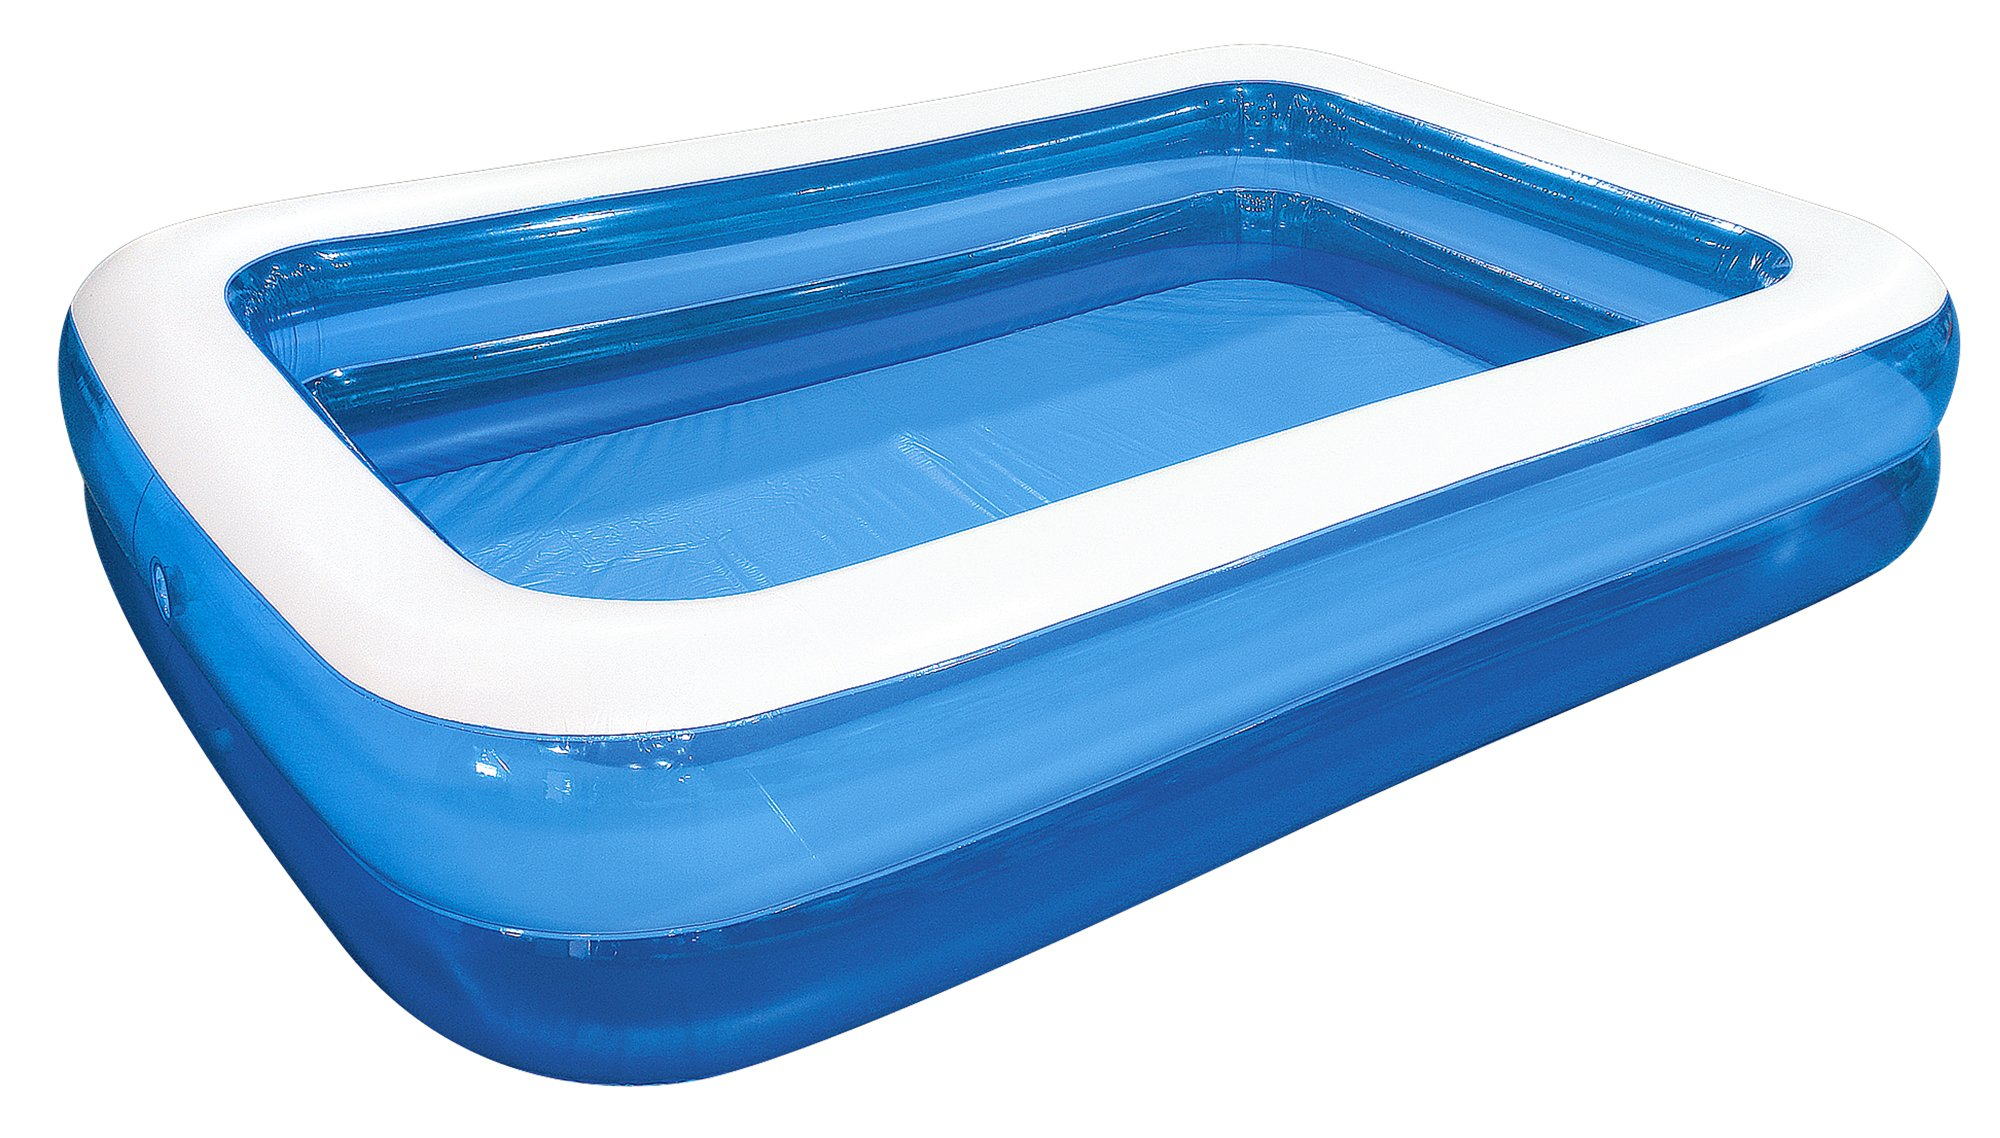 Giant Inflatable Kiddie Pool - Rectangular (103'' X 69'' X 20'') - Almost 9 Ft Long Pool by Jilong